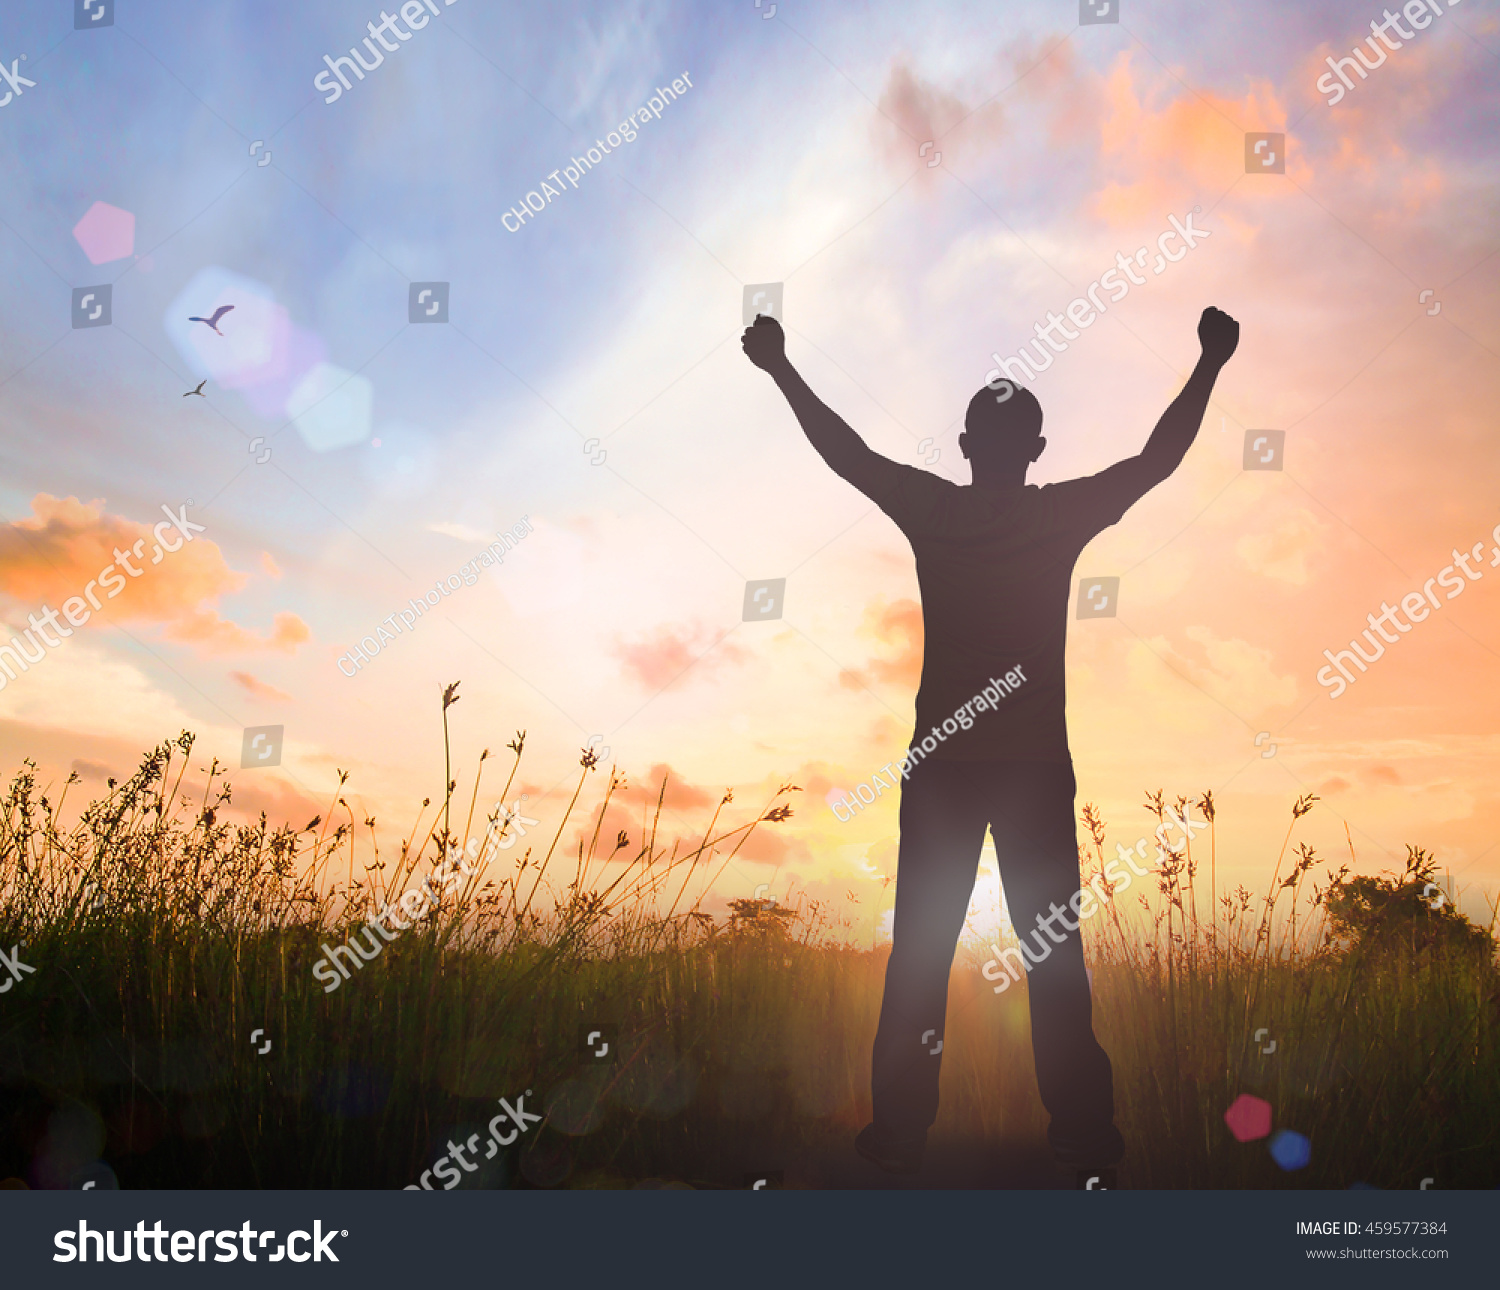 Human raised hands Blur Cure God Hope Sky Man Dua Live Mercy Islam Alone Autism Hajj Light Muslim Allah Prayer Day Civil Victim Black Right Drug Happy Easter World Refugee Nature Sport Game concept